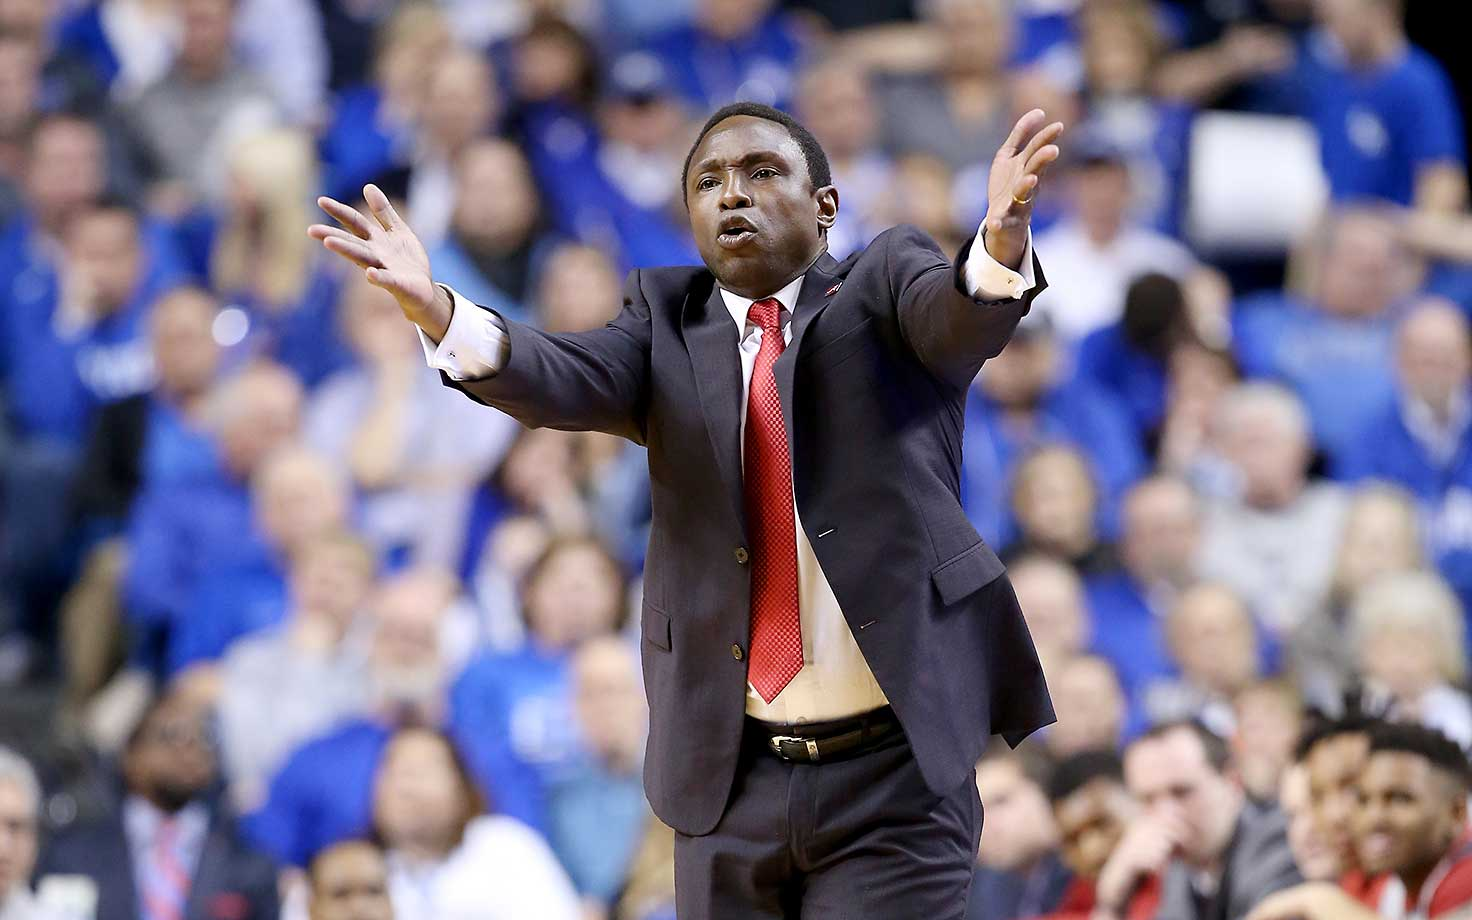 Avery Johnson, head coach of the Alabama Crimson Tide, gives instructions to his team during a game at Kentucky.